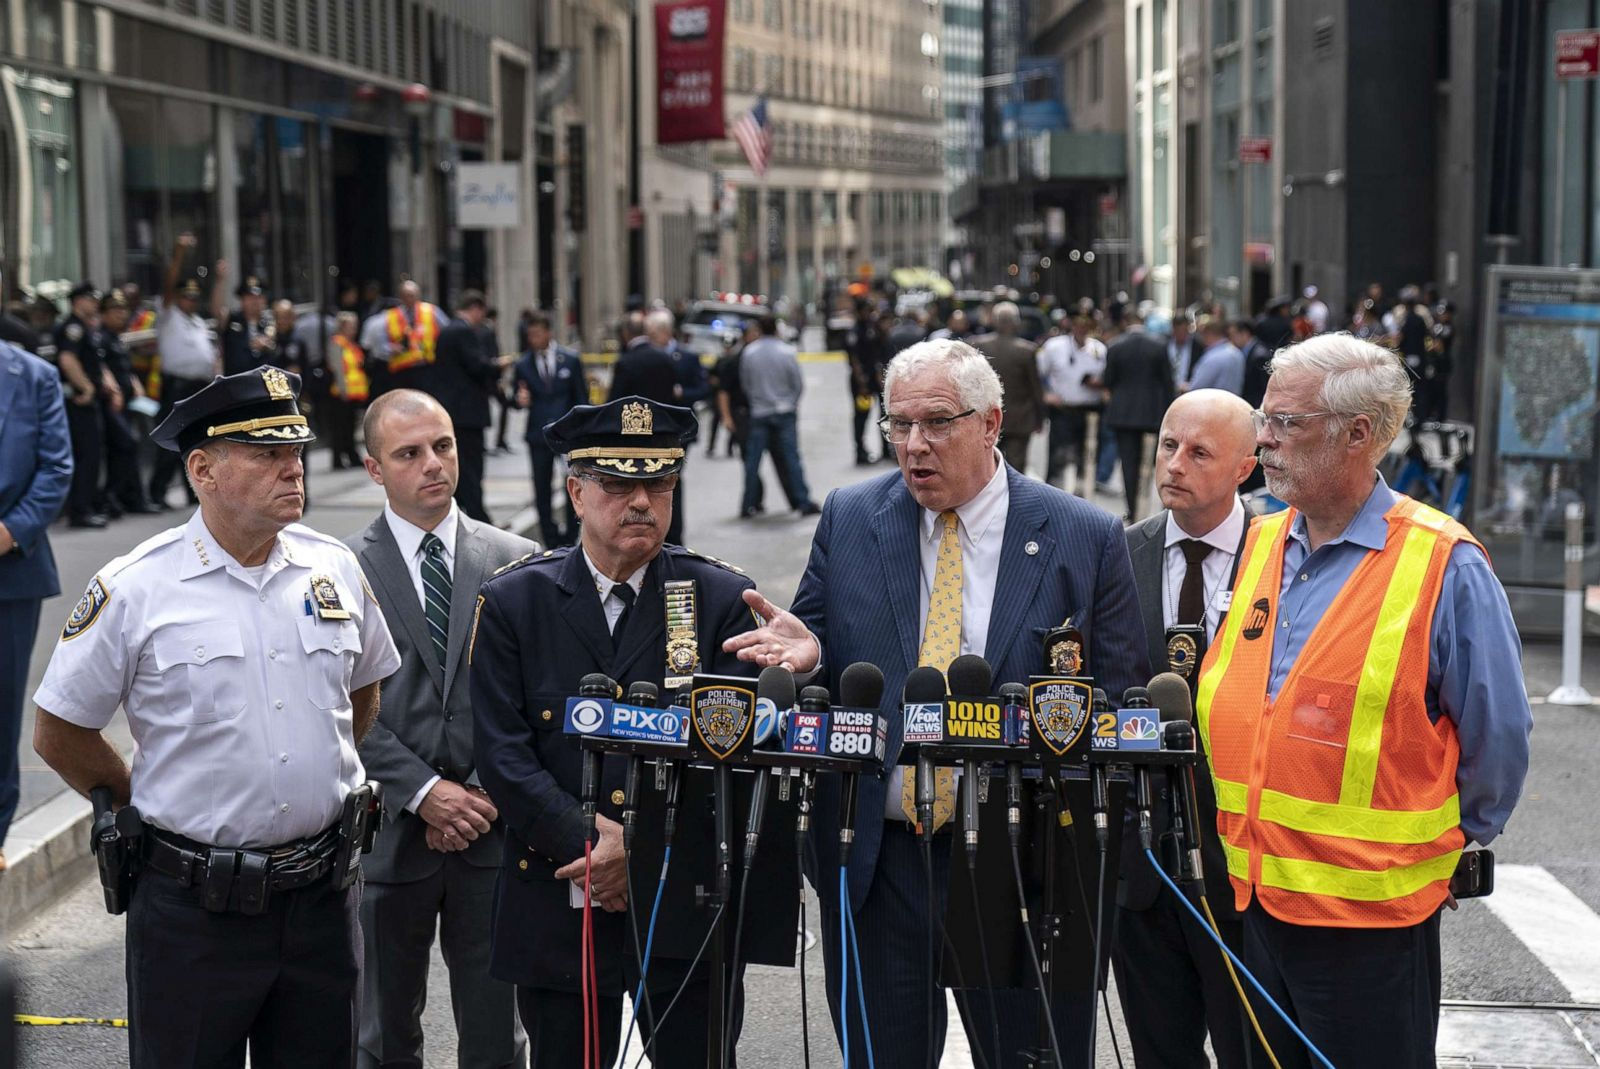 Suspect charged with placing false bombs in New York City